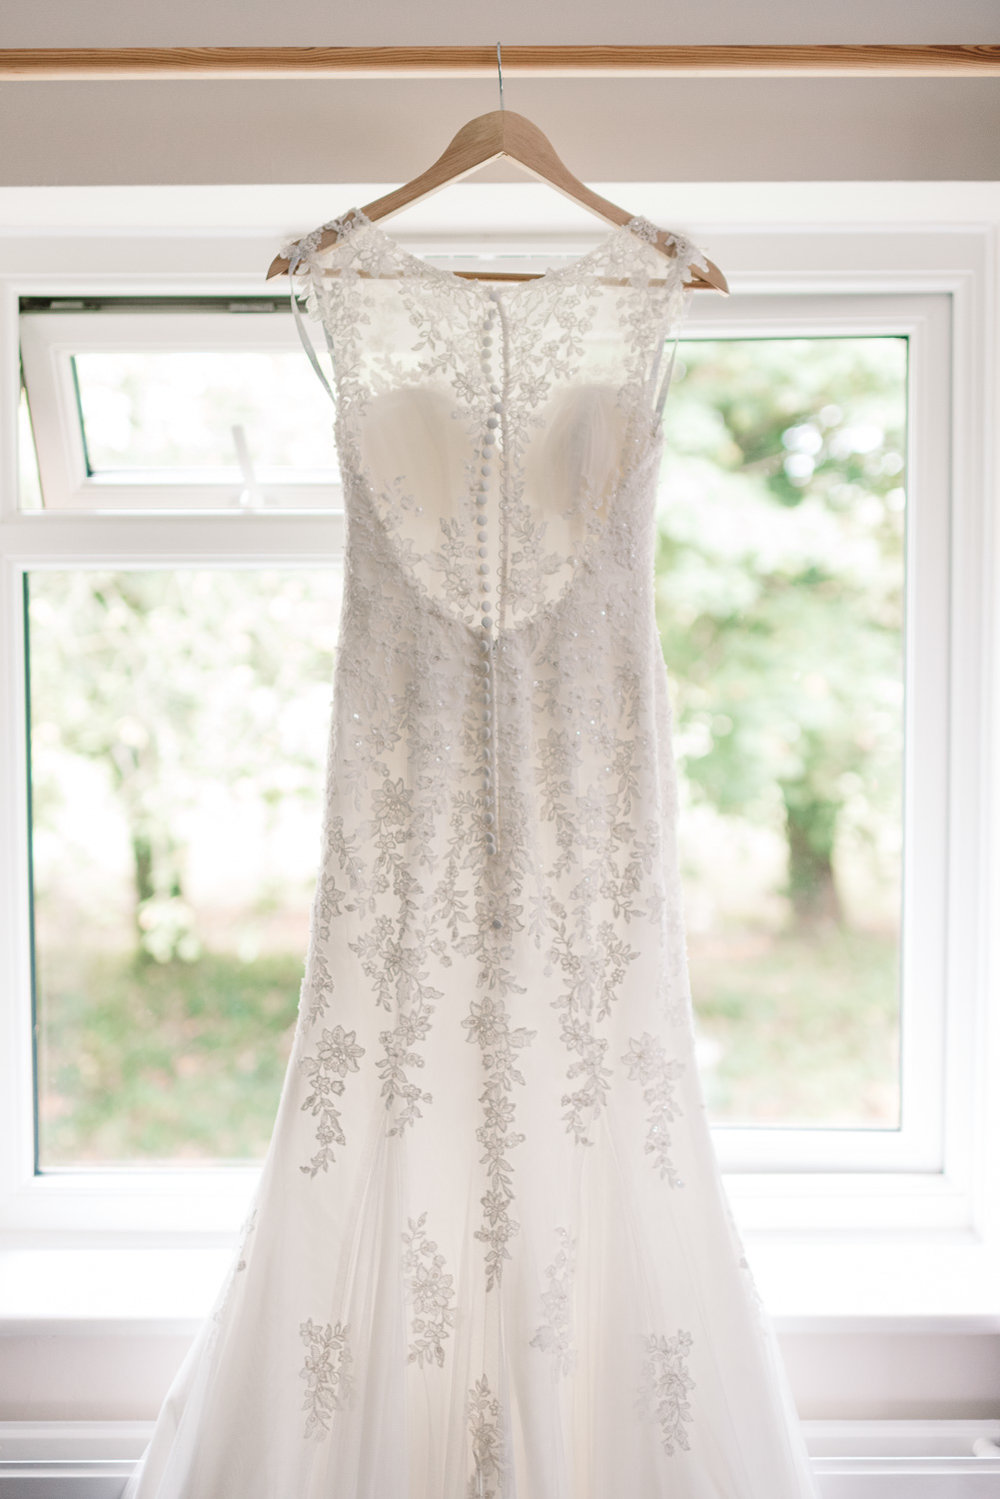 bride's lacey white wedding dress hanging on hanger on curtain rail in window